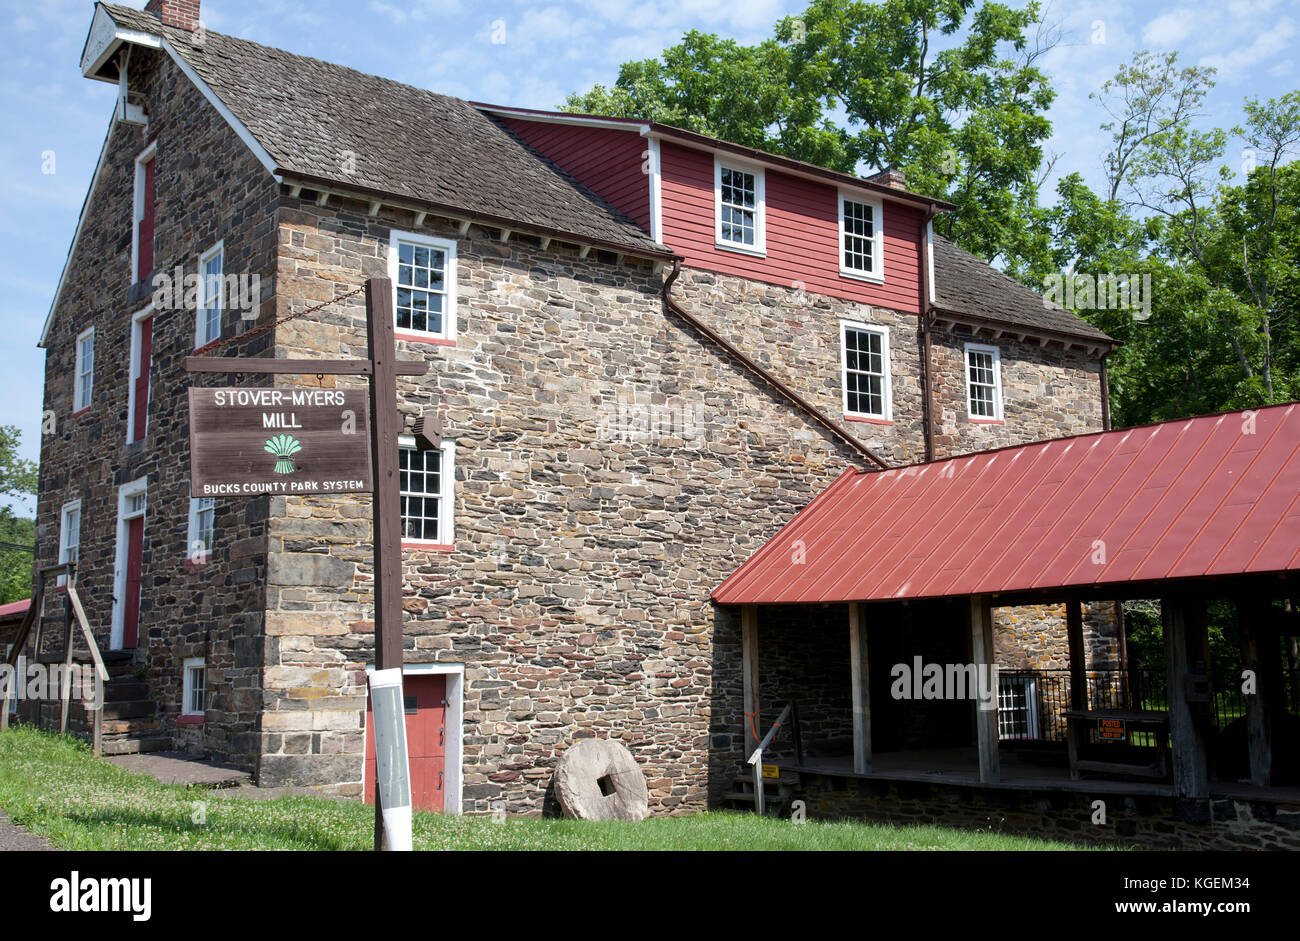 Stover-Myers Mill in Bucks County, Pennsylvanai - USA - Stock Image